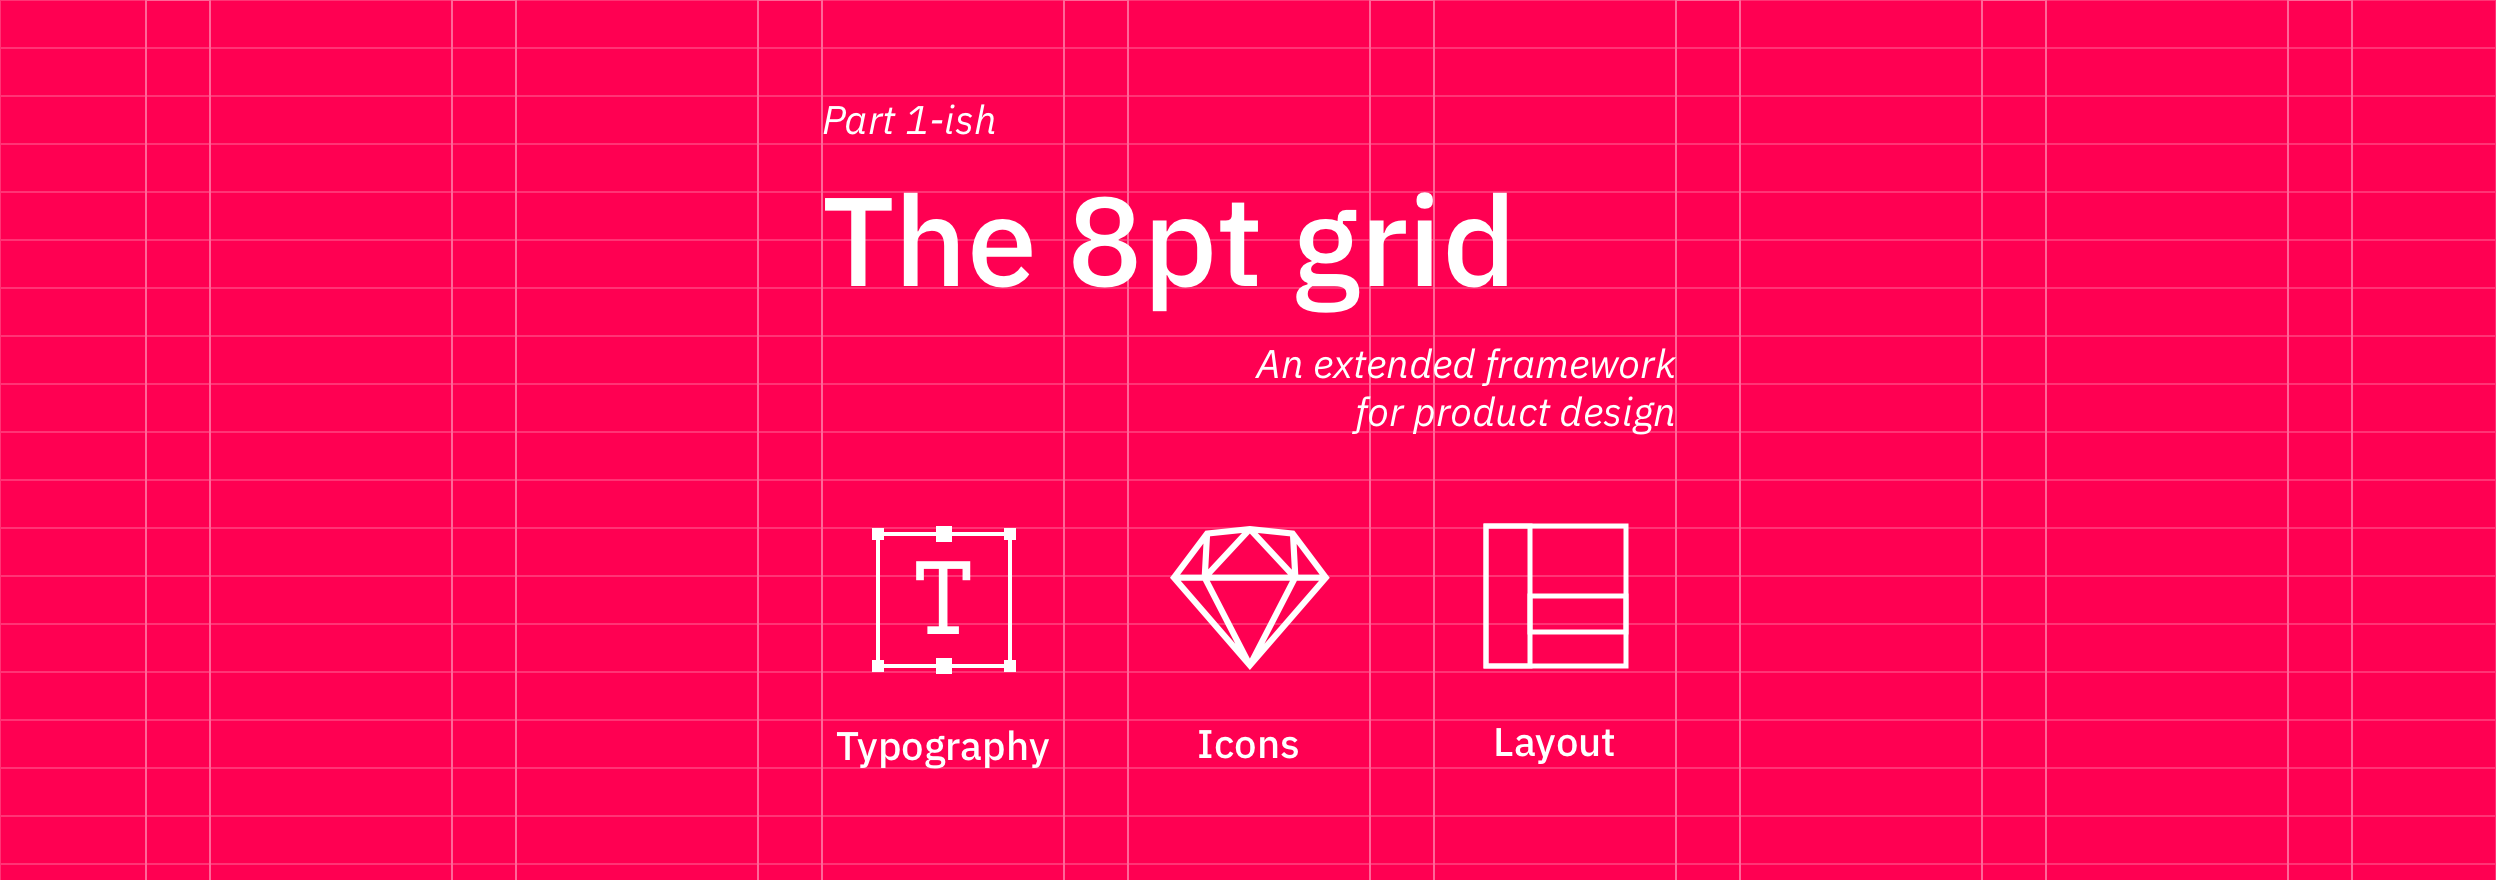 The Comprehensive 8pt Grid Guide Start Your Ui Project Right With This By Vitsky The Startup Medium